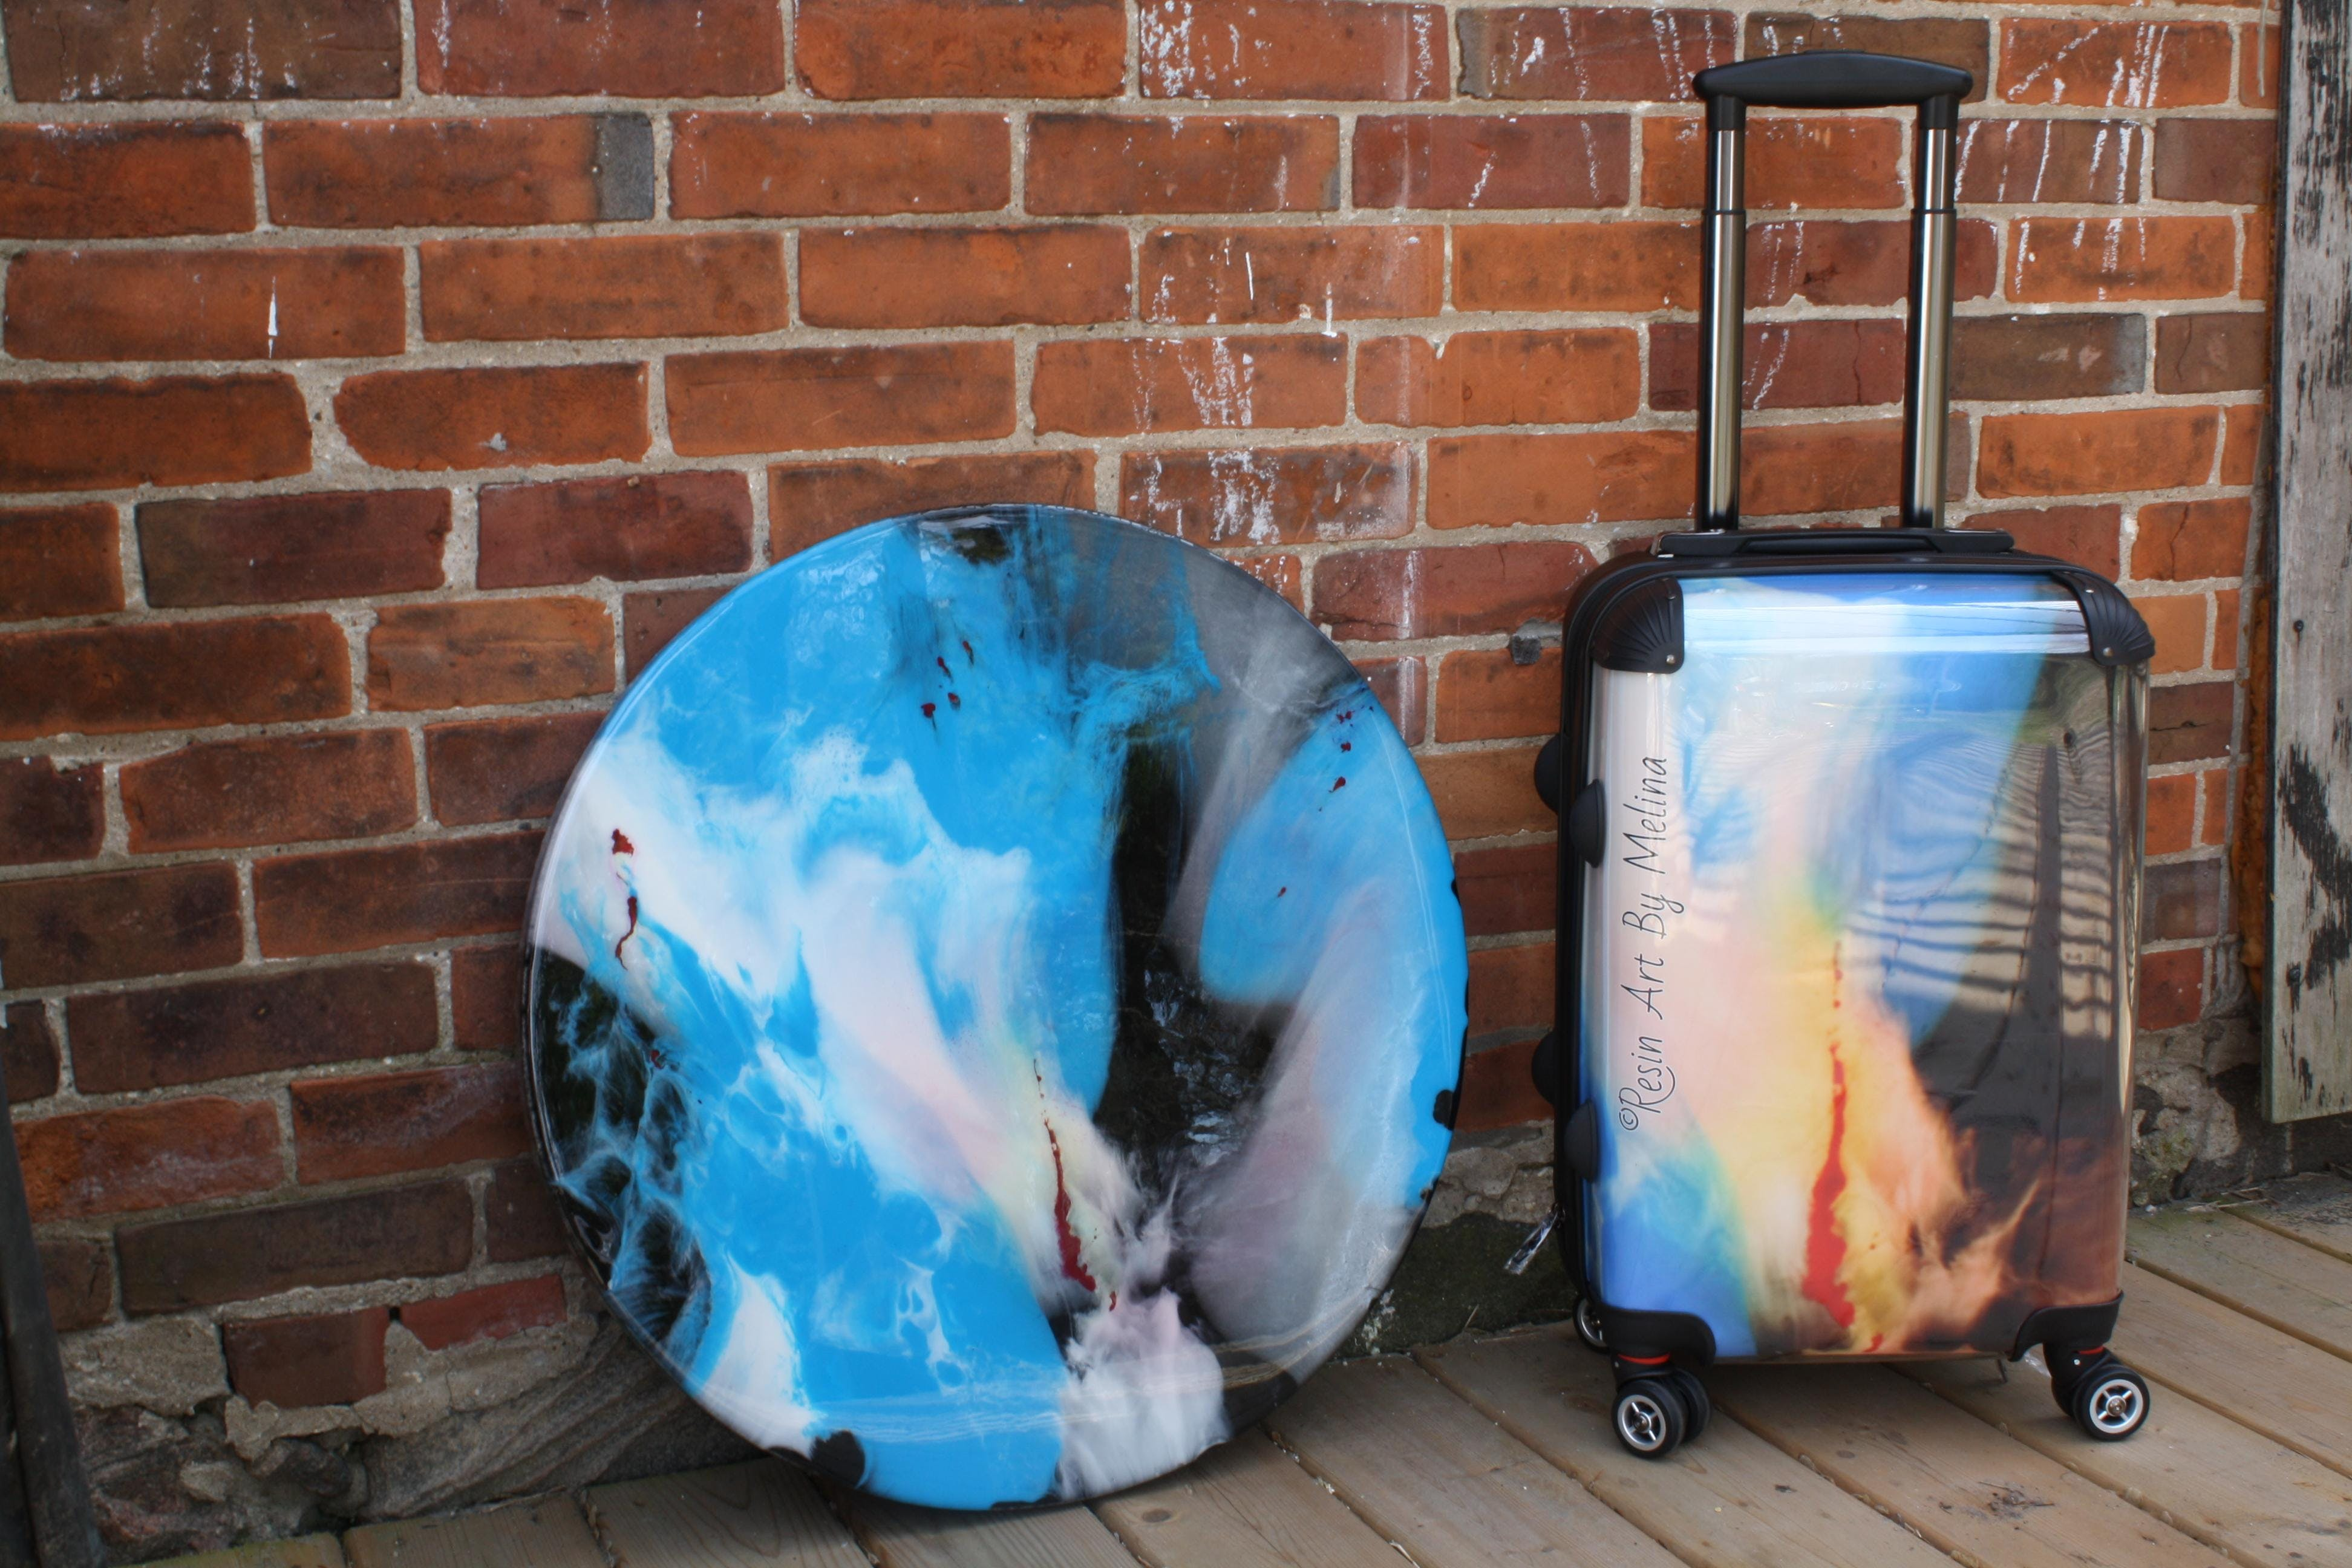 Find a Cure for Trigeminal Neuralgia - Luggage Lottery!